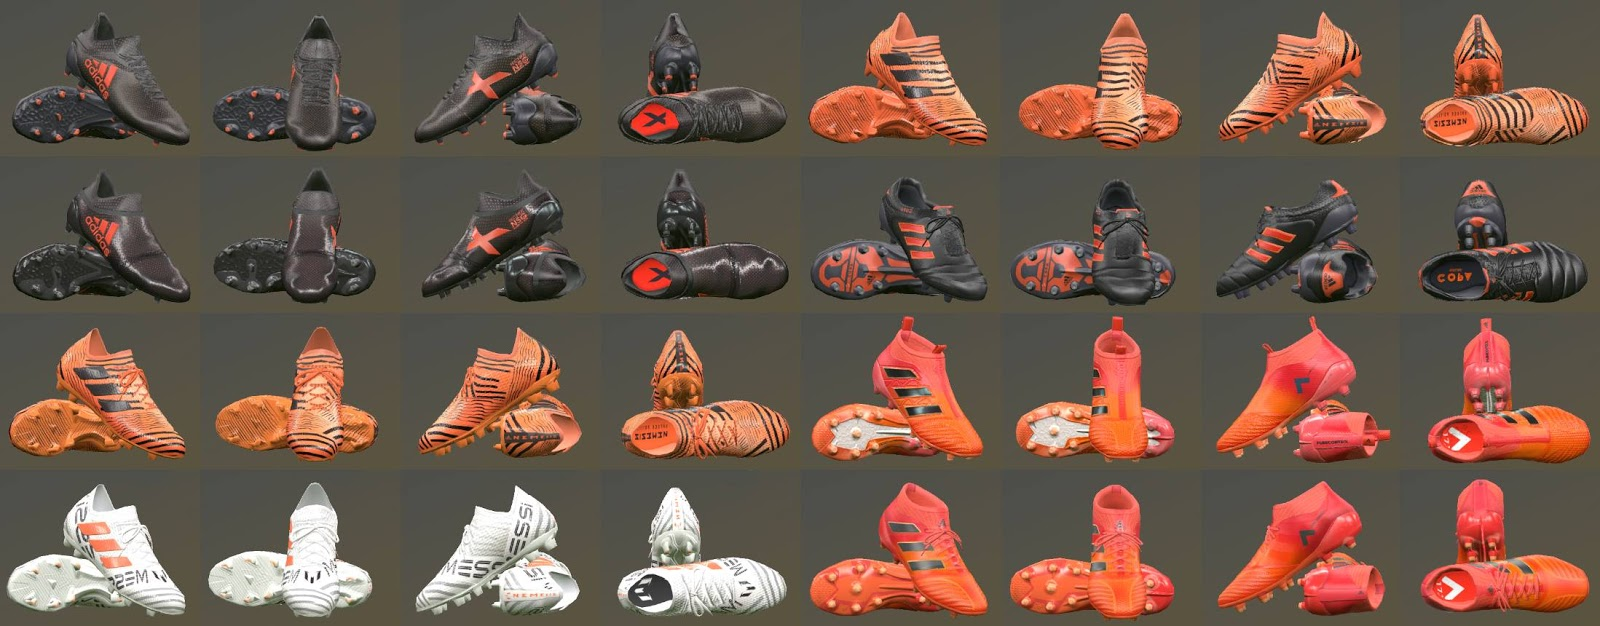 PES 2017 Adidas Pyro Storm Pack Boots by T09